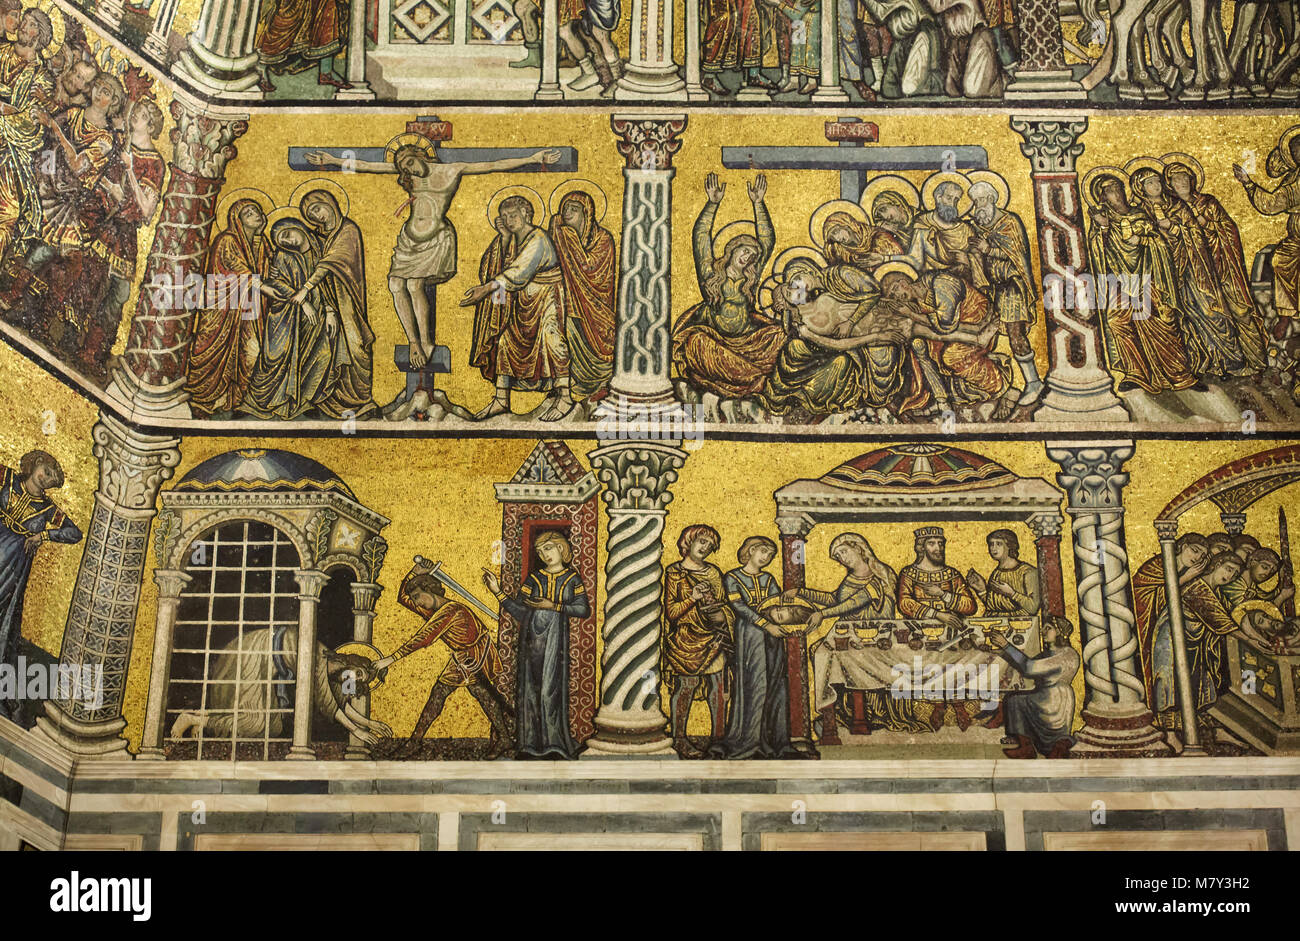 Scenes from the Passion of Jesus Christ and from the Stories of Saint John the Baptist depicted in the medieval - Stock Image